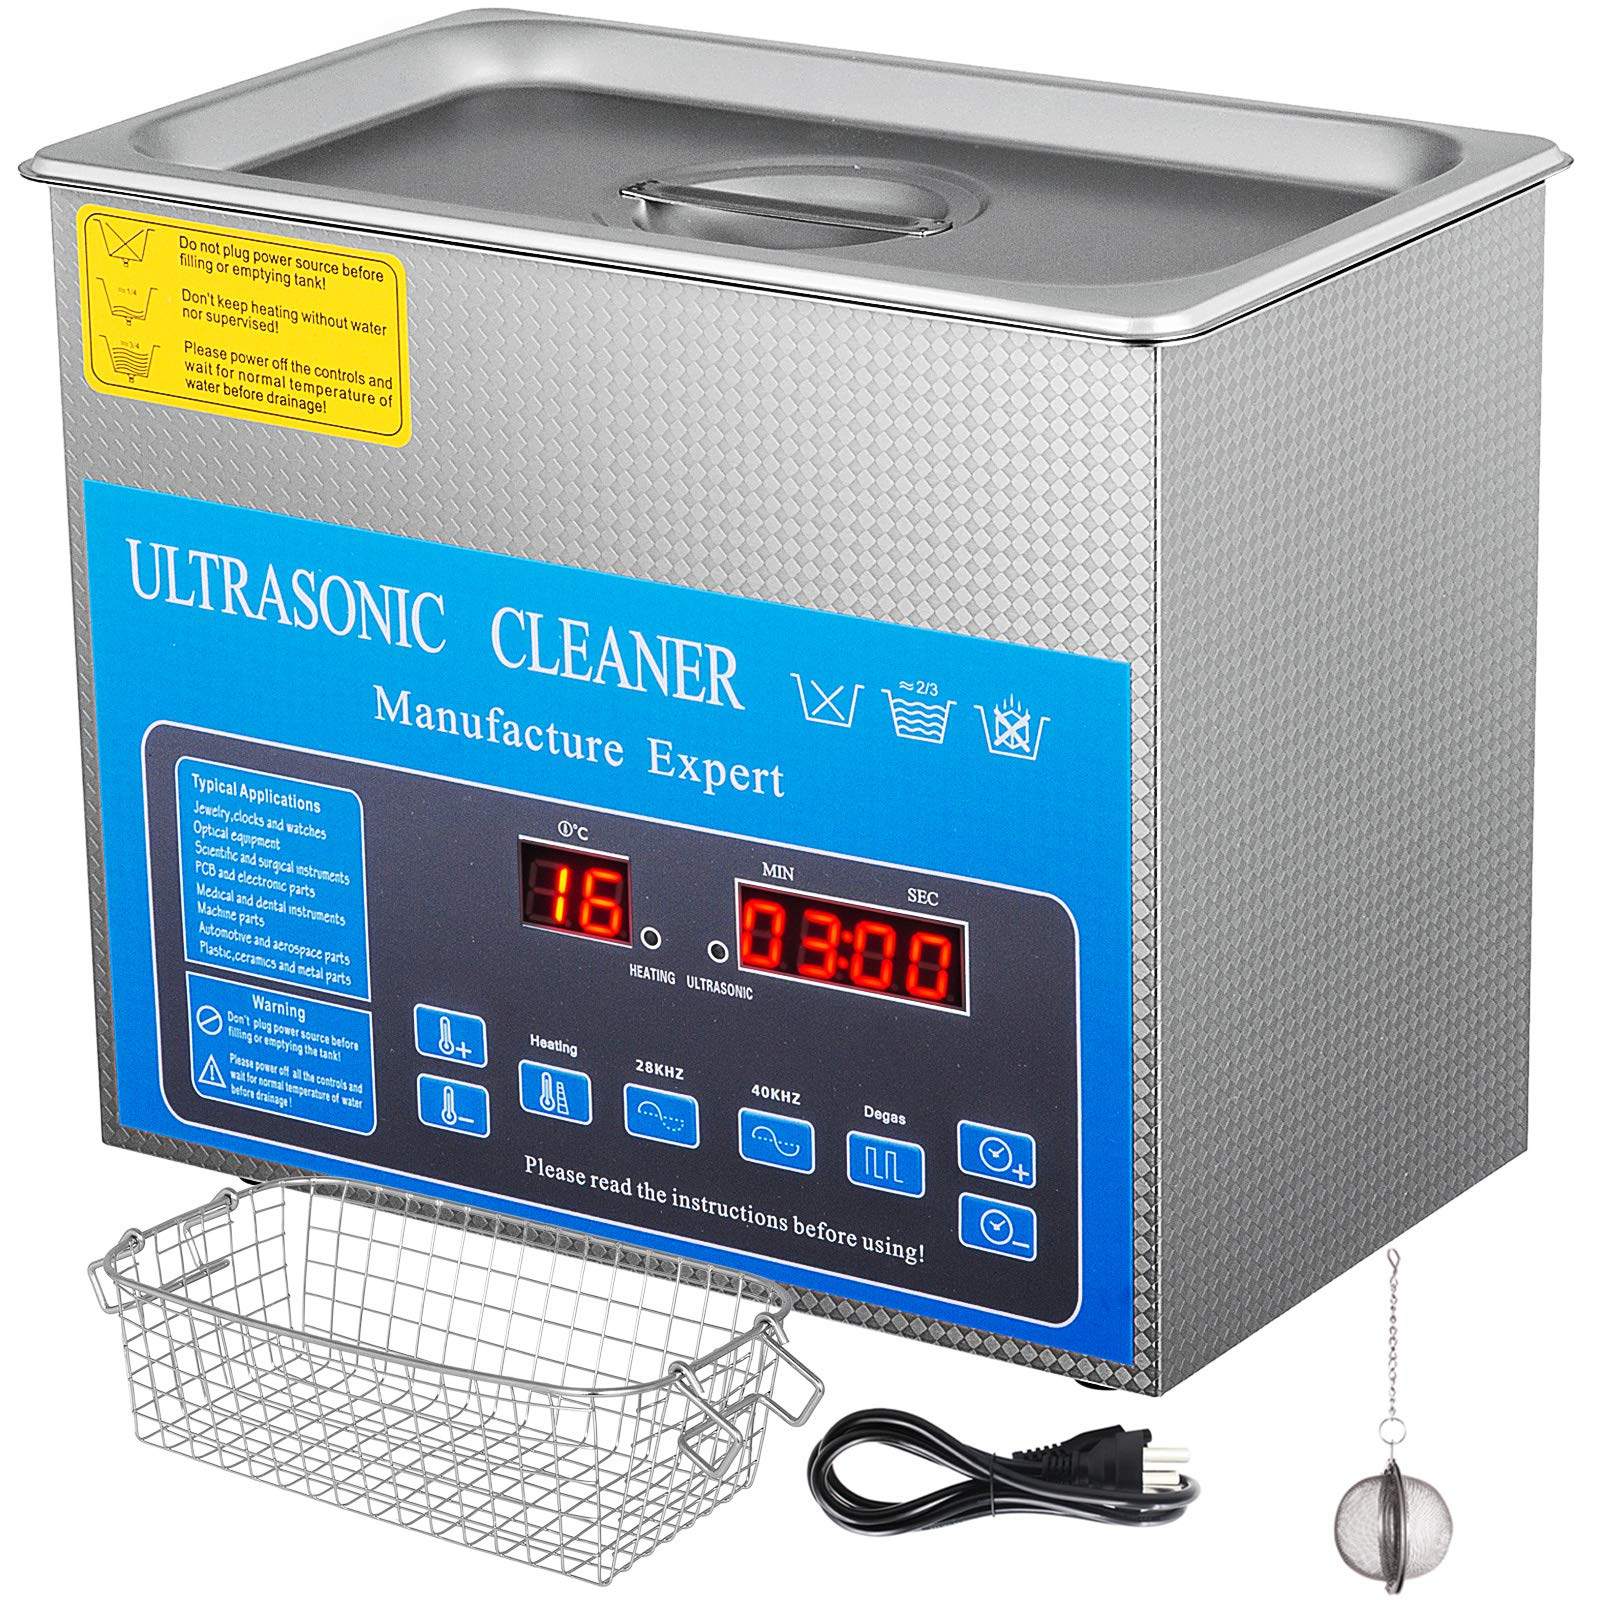 Mophorn 28/40khz Dual Frequency Ultrasonic Cleaner 304 Stainless Steel Digital Lab Ultrasonic Cleaners with Heater Timer for Jewelry Watch Glasses Circuit Board Small Parts Dental Instrument (3L)